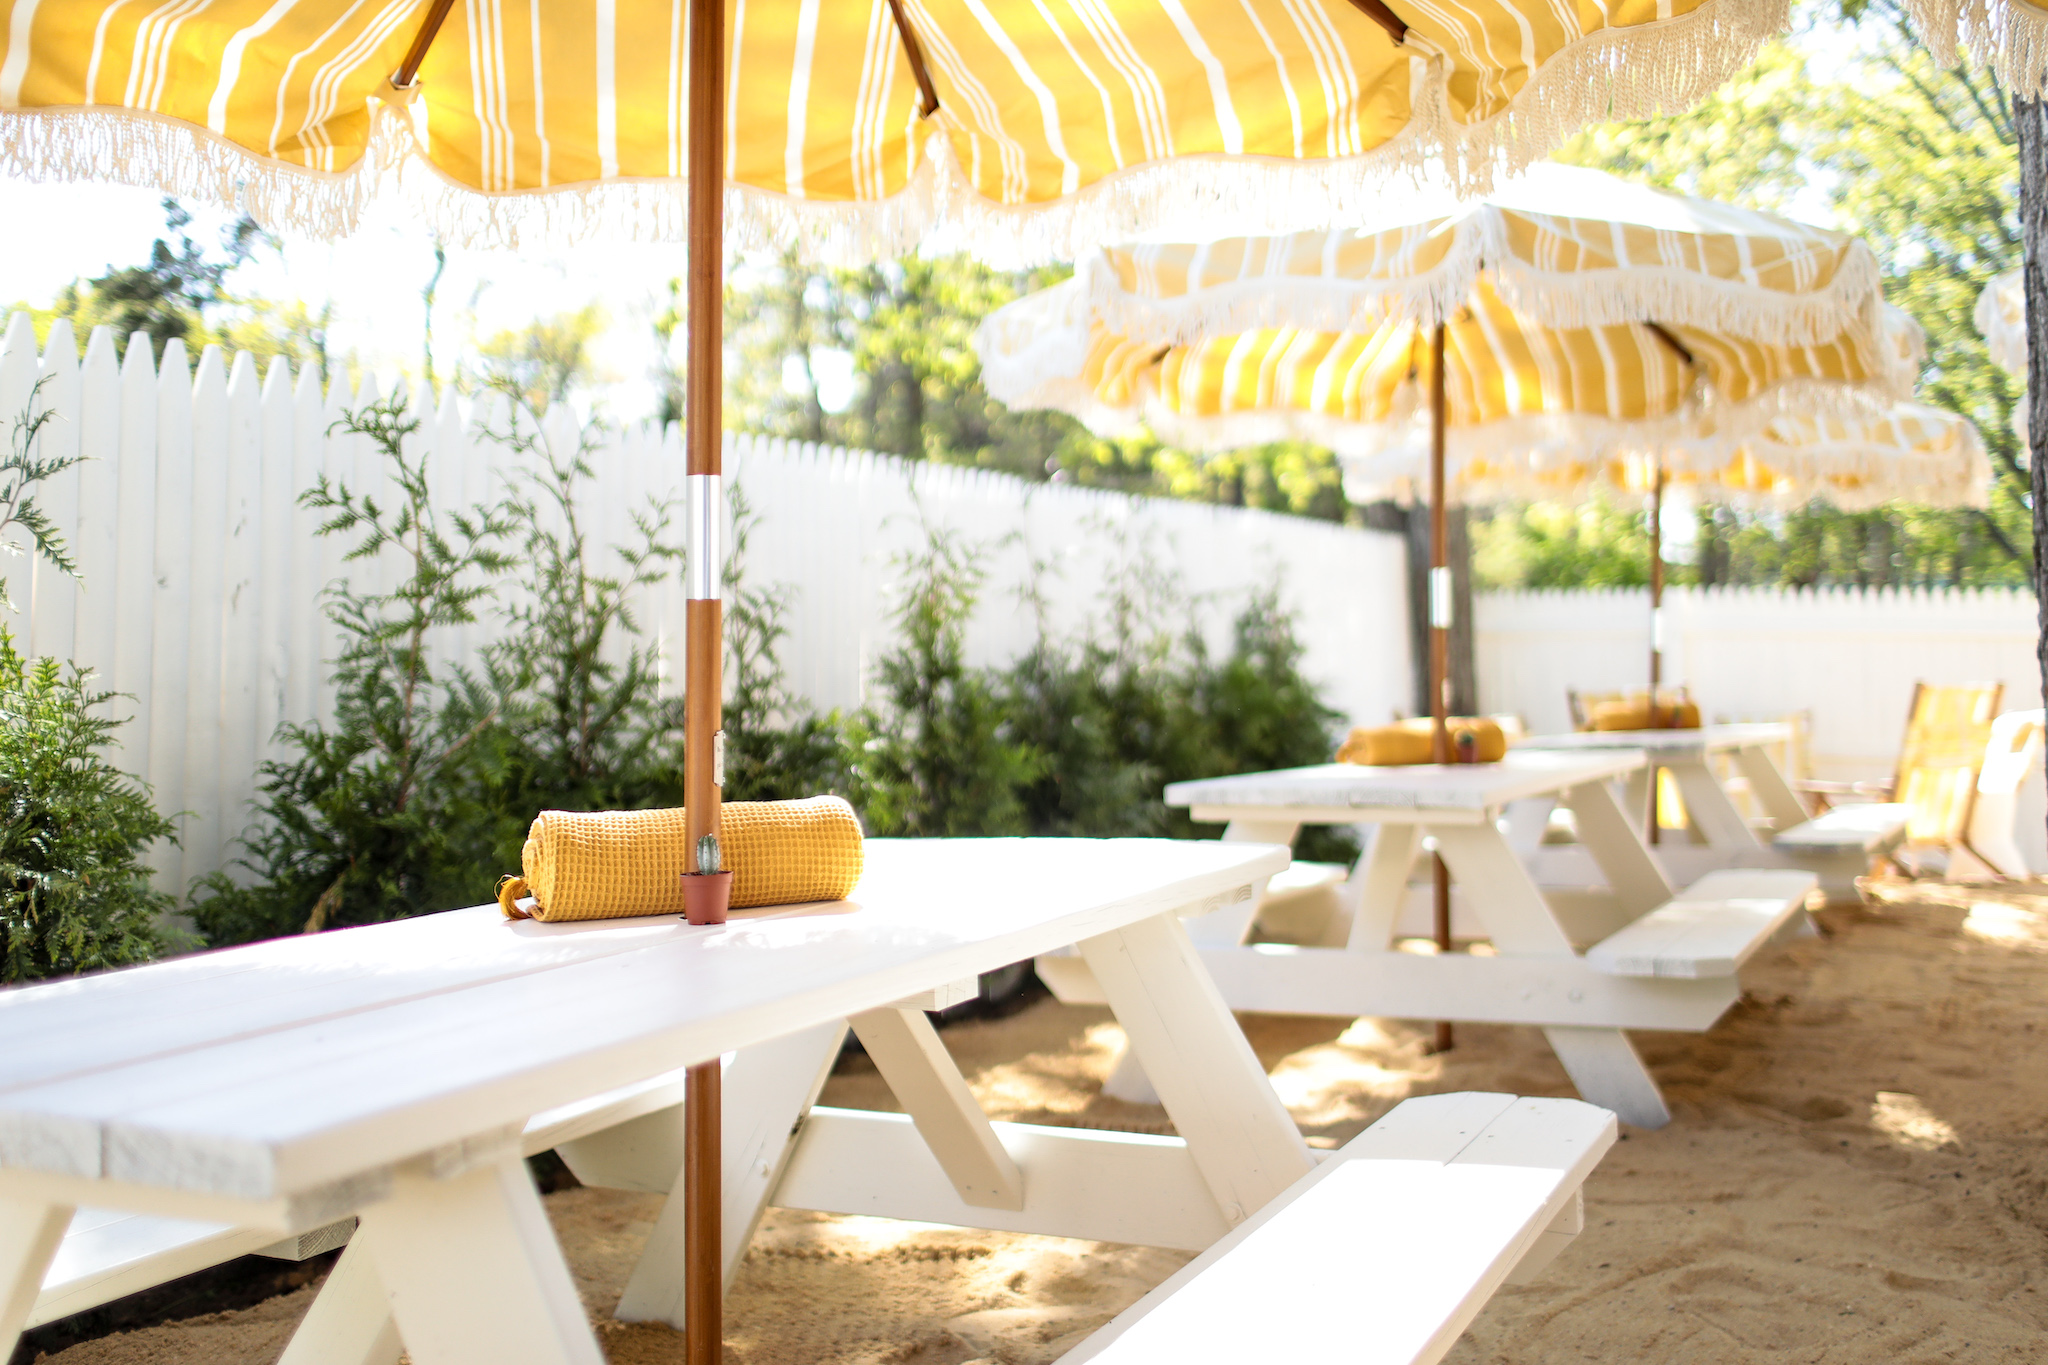 Picnic tables outside in the Hamptons